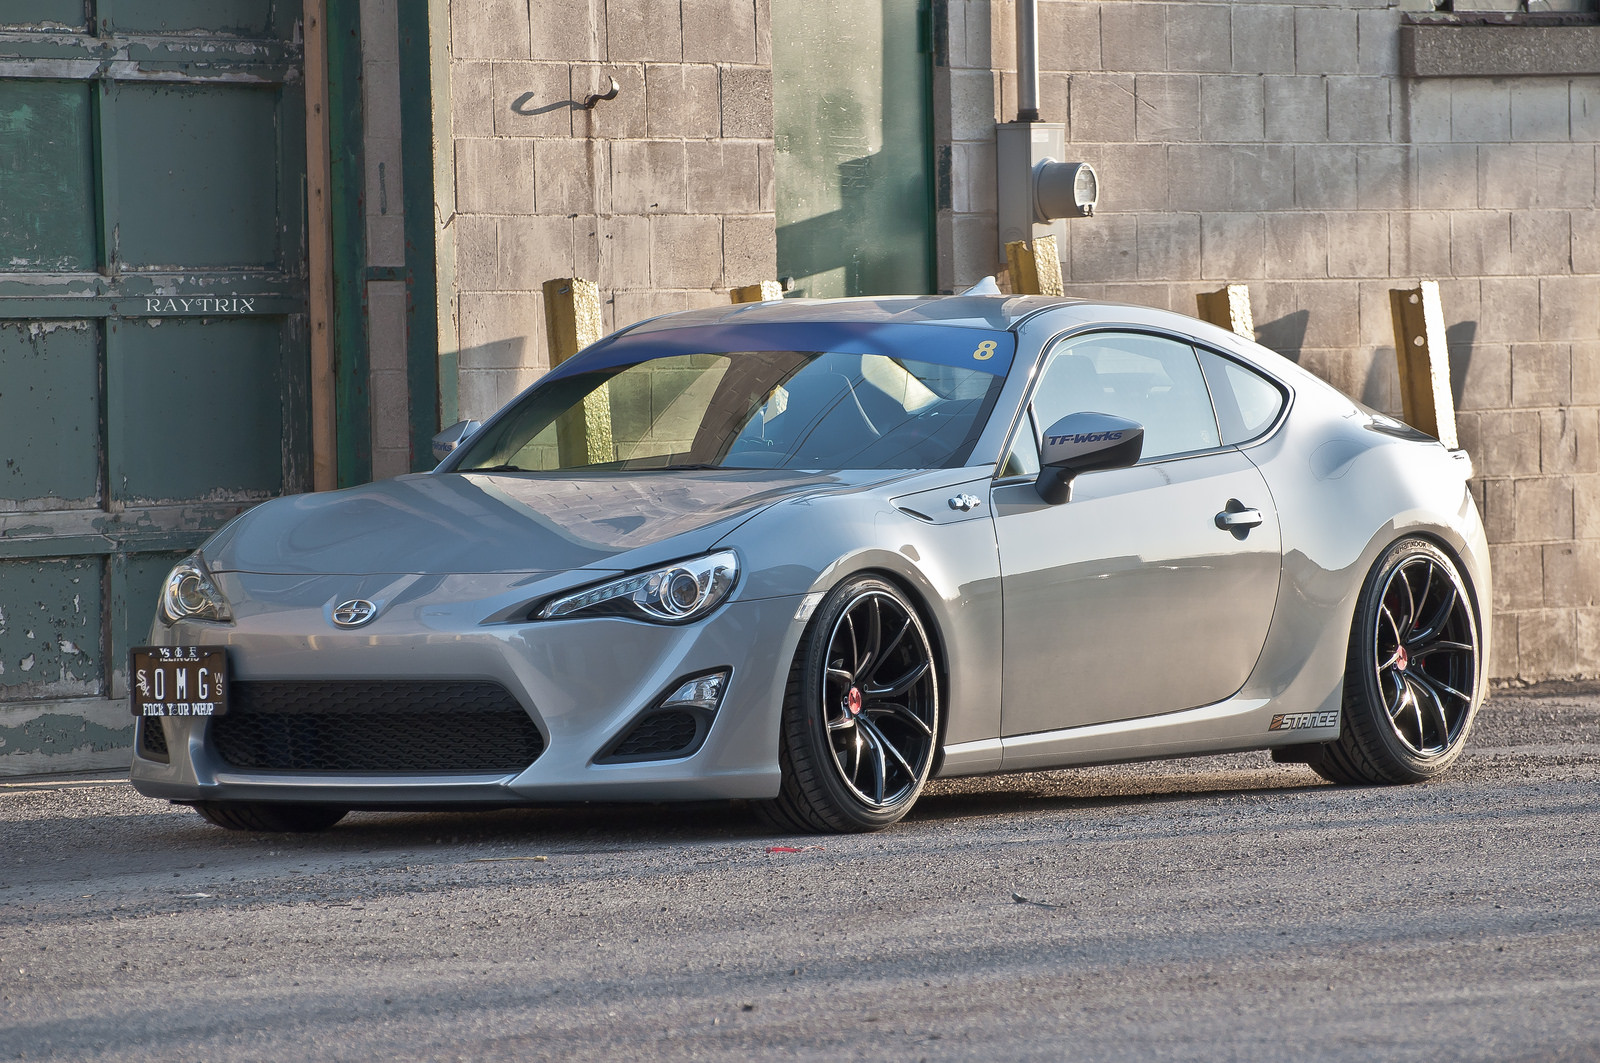 Scion fr s custom wheels gram lights 57fxx 18x9 5 et 38 tire size 245 35 r18 x et 255 35 r - Scion frs custom ...